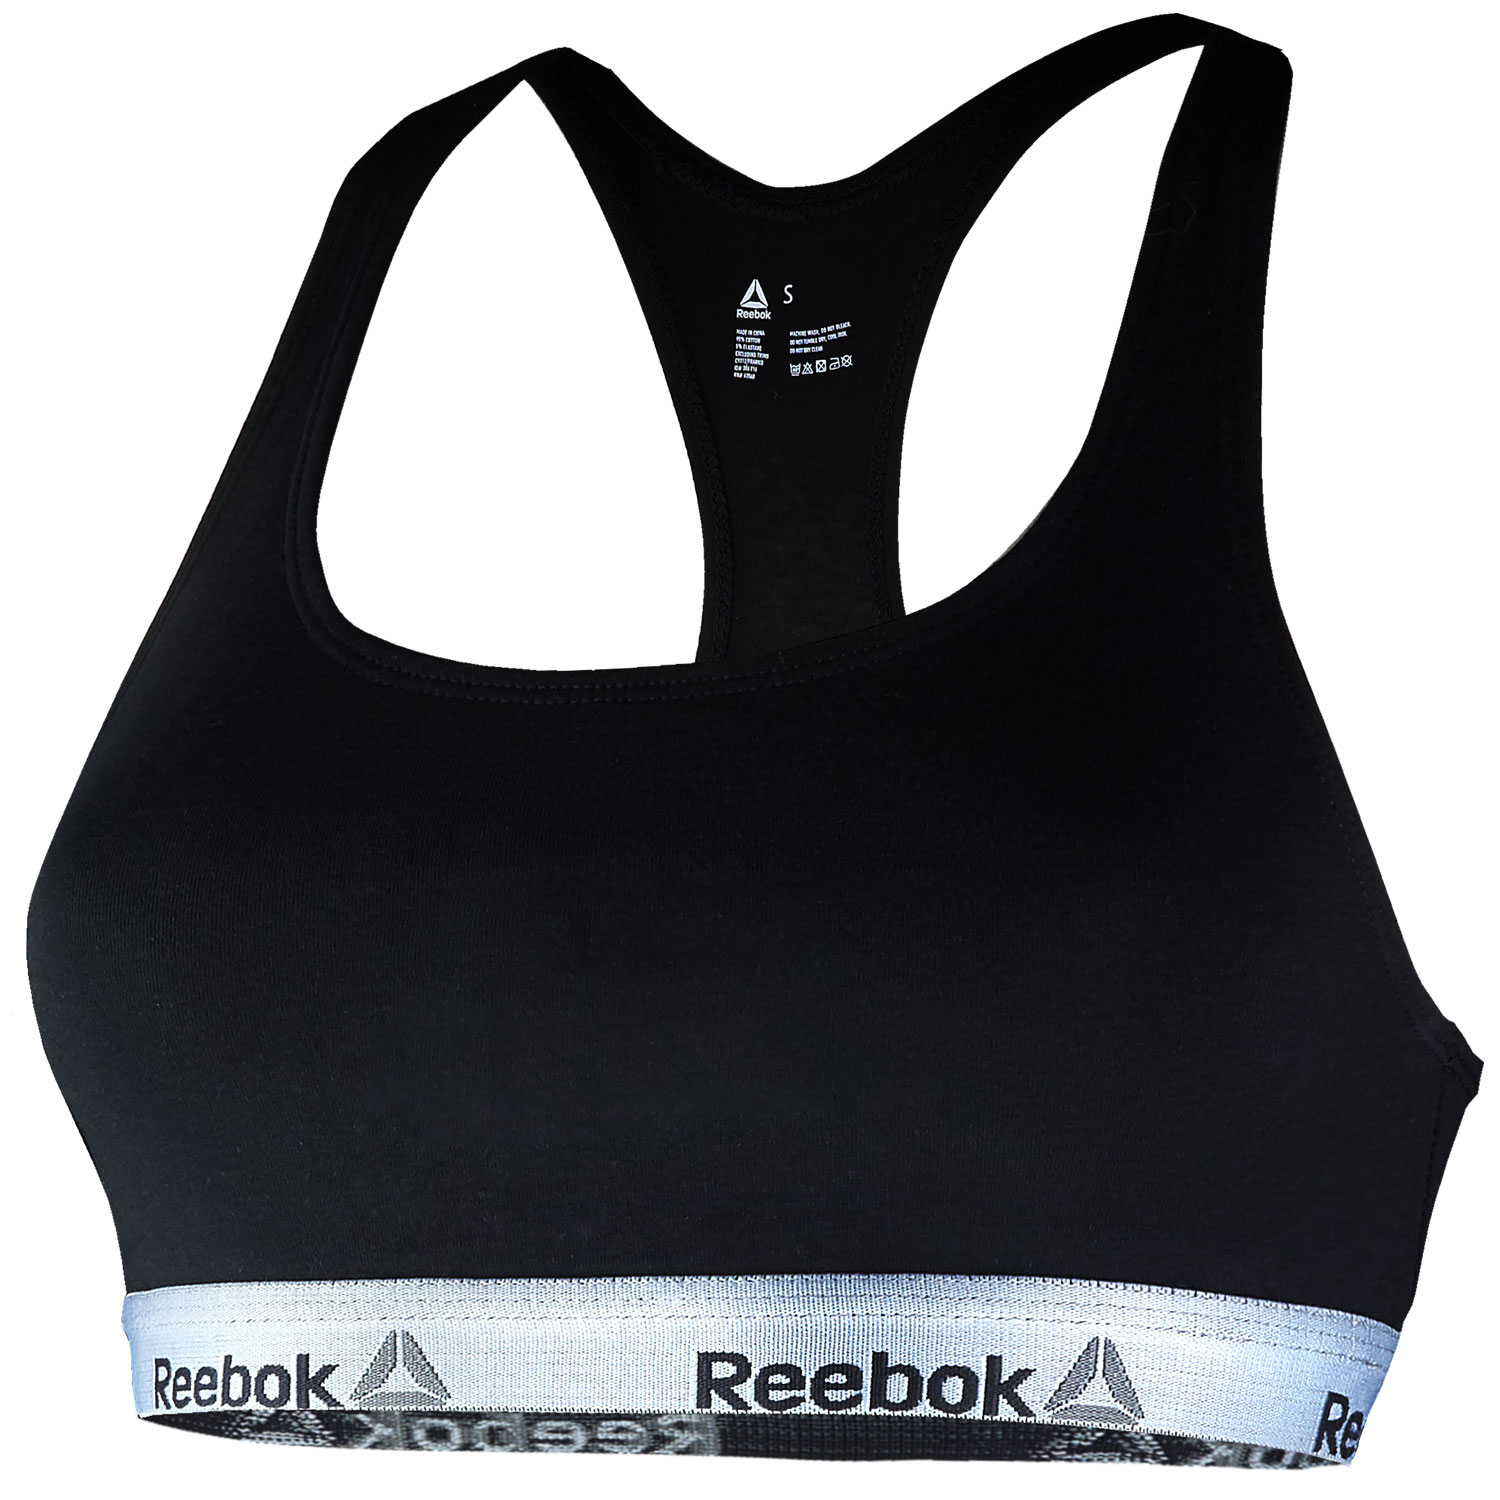 Reebok Damen Bustier, 2er Pack Cotton Elastane Crop Top – Bild 2